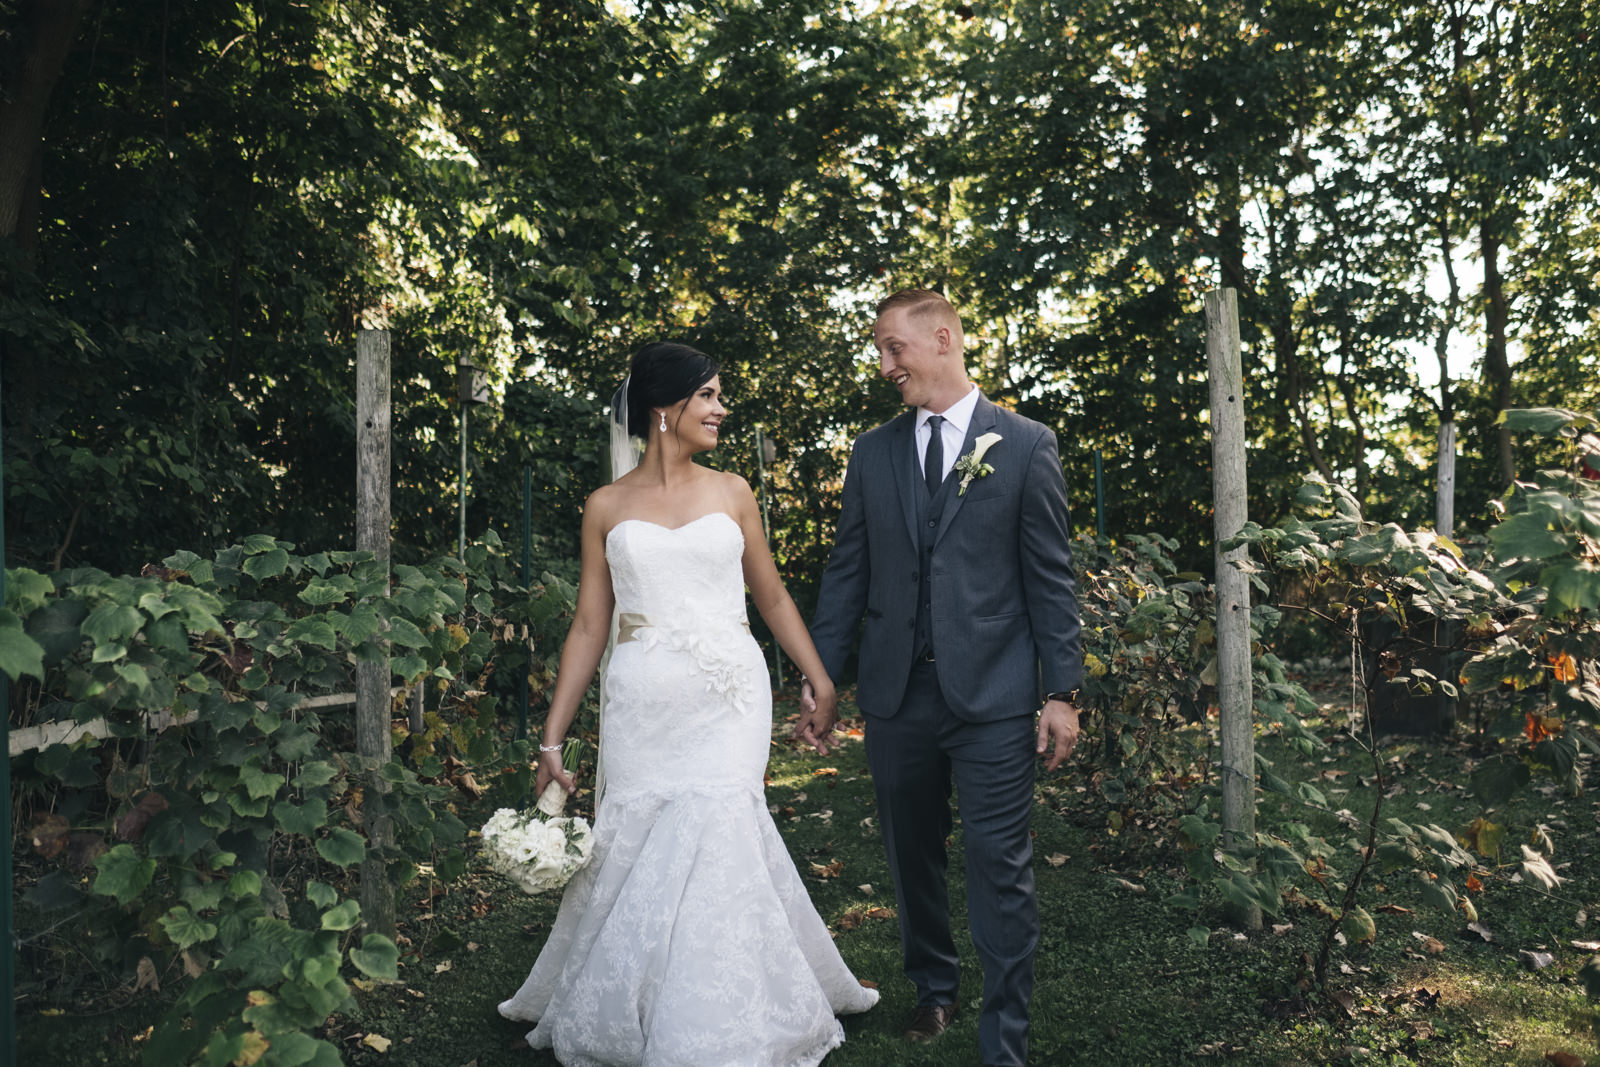 Bride and groom walk down a pathway together after becoming husband and wife in northern Ohio